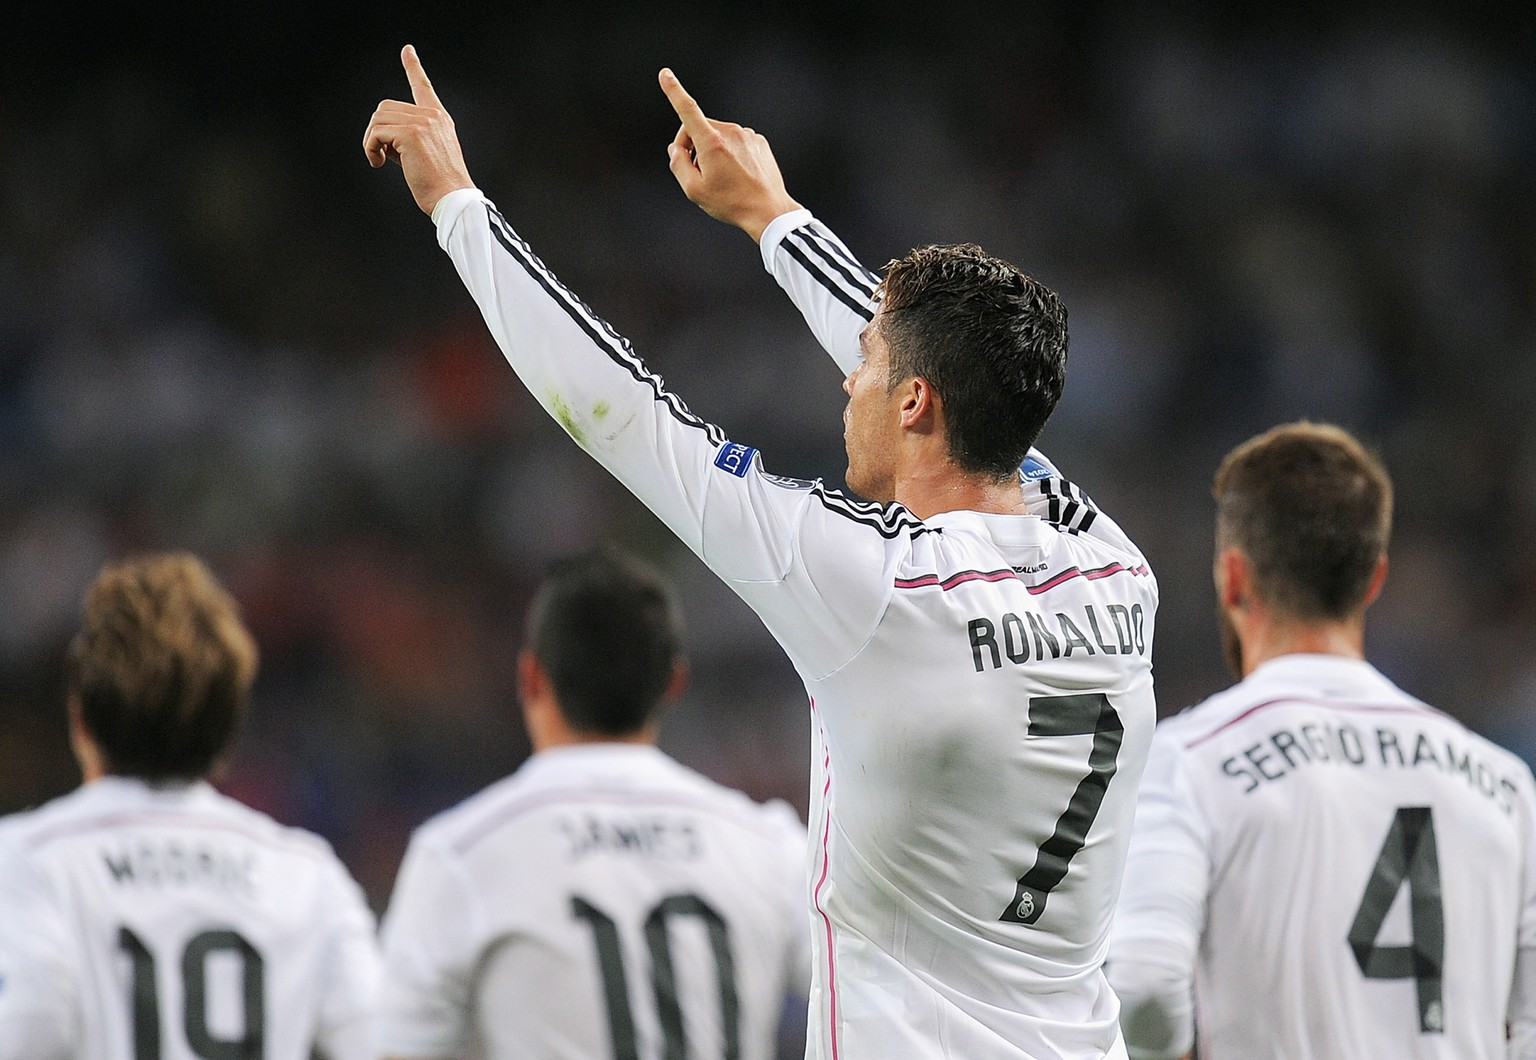 MADRID, SPAIN - SEPTEMBER 16:  Cristiano Ronaldo of Real Madrid celebrates after scoring Real's 3rd goal during the UEFA Champions League Group B match between Real Madrid CF and FC Basel 1893 on September 16, 2014 in Madrid, Spain.  (Photo by Denis Doyle/Getty Images)